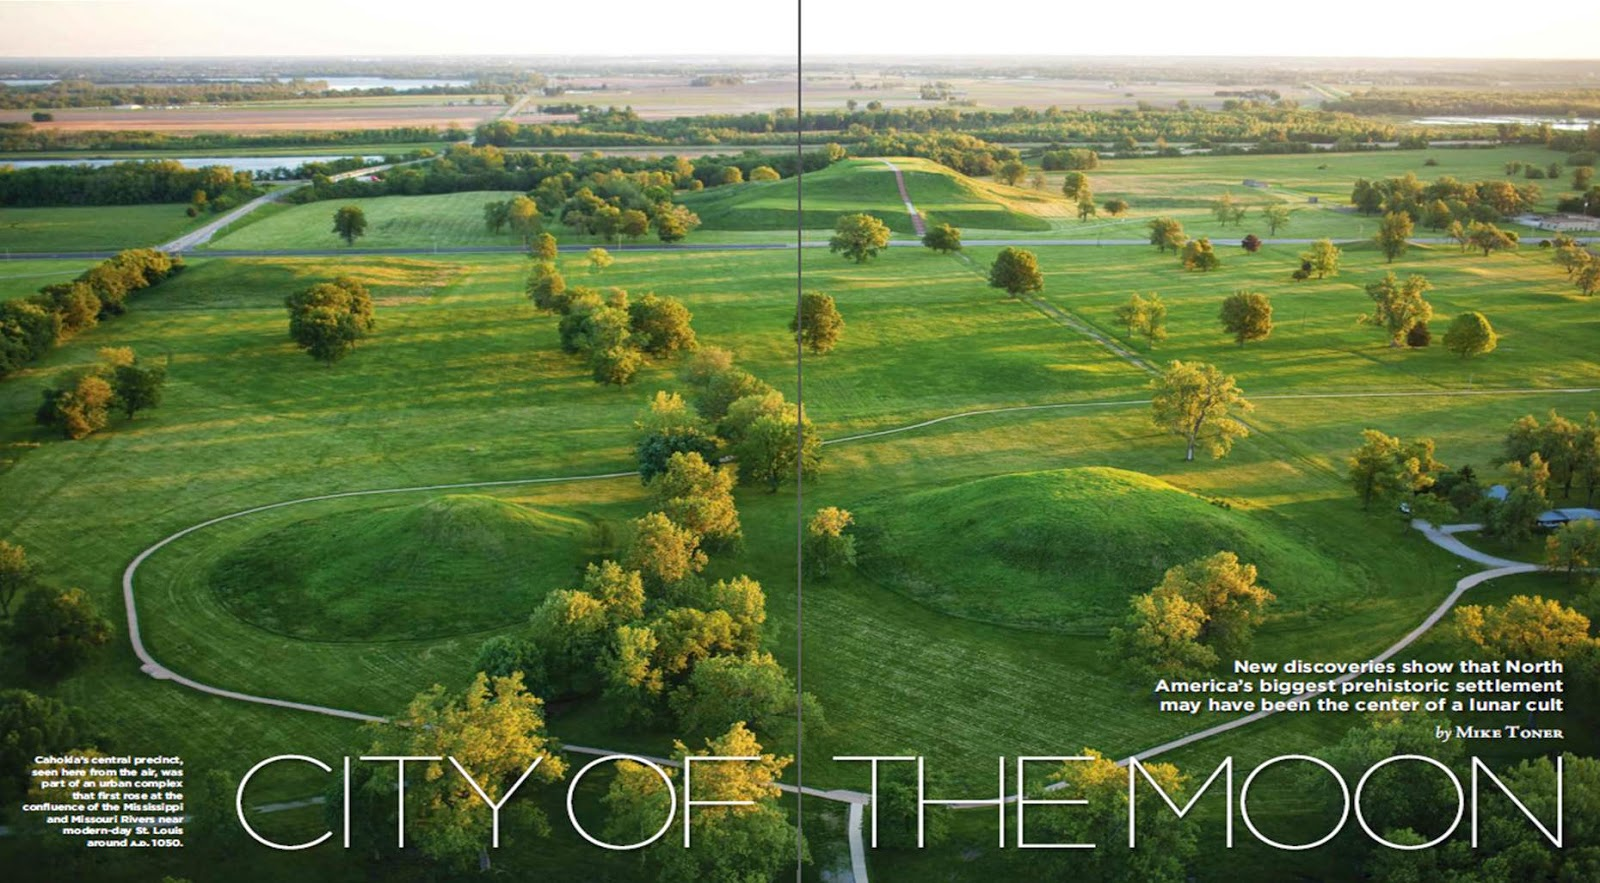 Archaeology Magazine March/April 2015. City of the Moon. Mike Toner. Image Courtesy of Archaeology Magazine.